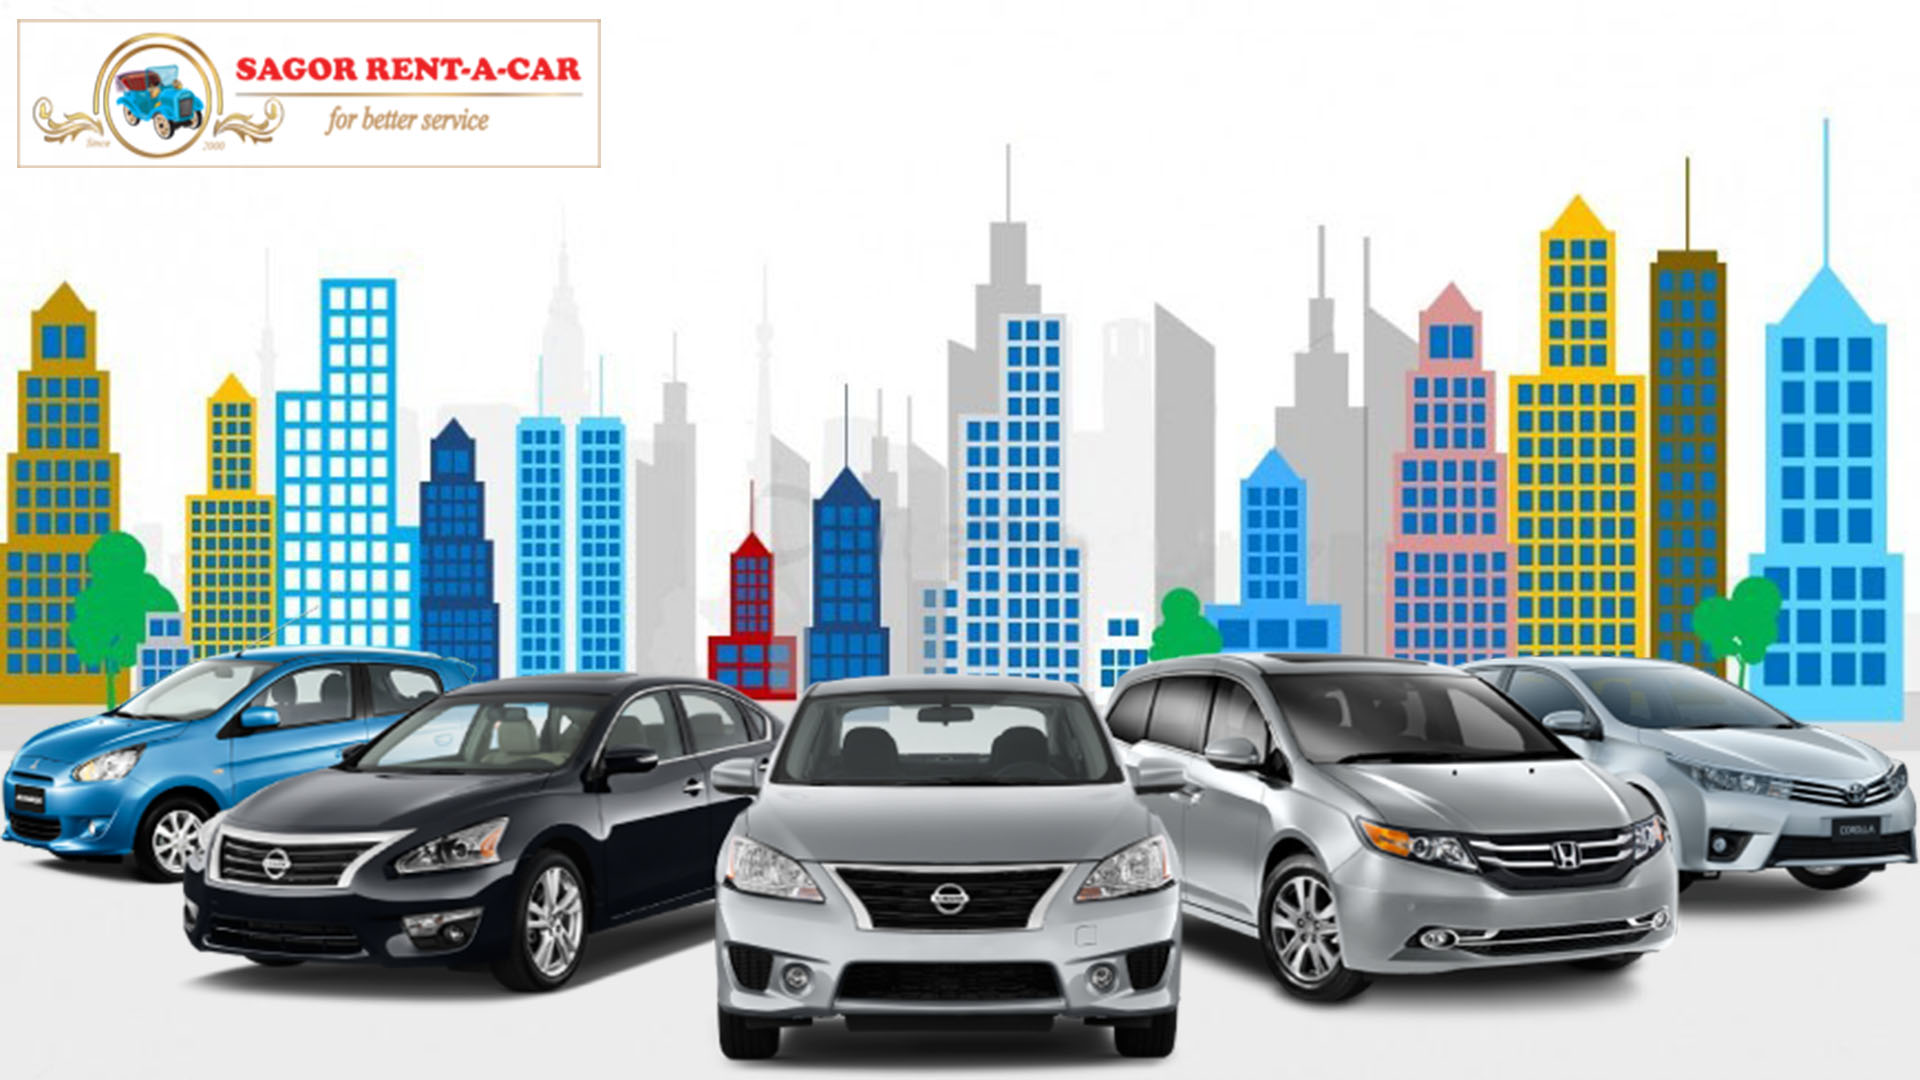 Rent A Car: Sagor Rent-A-Car